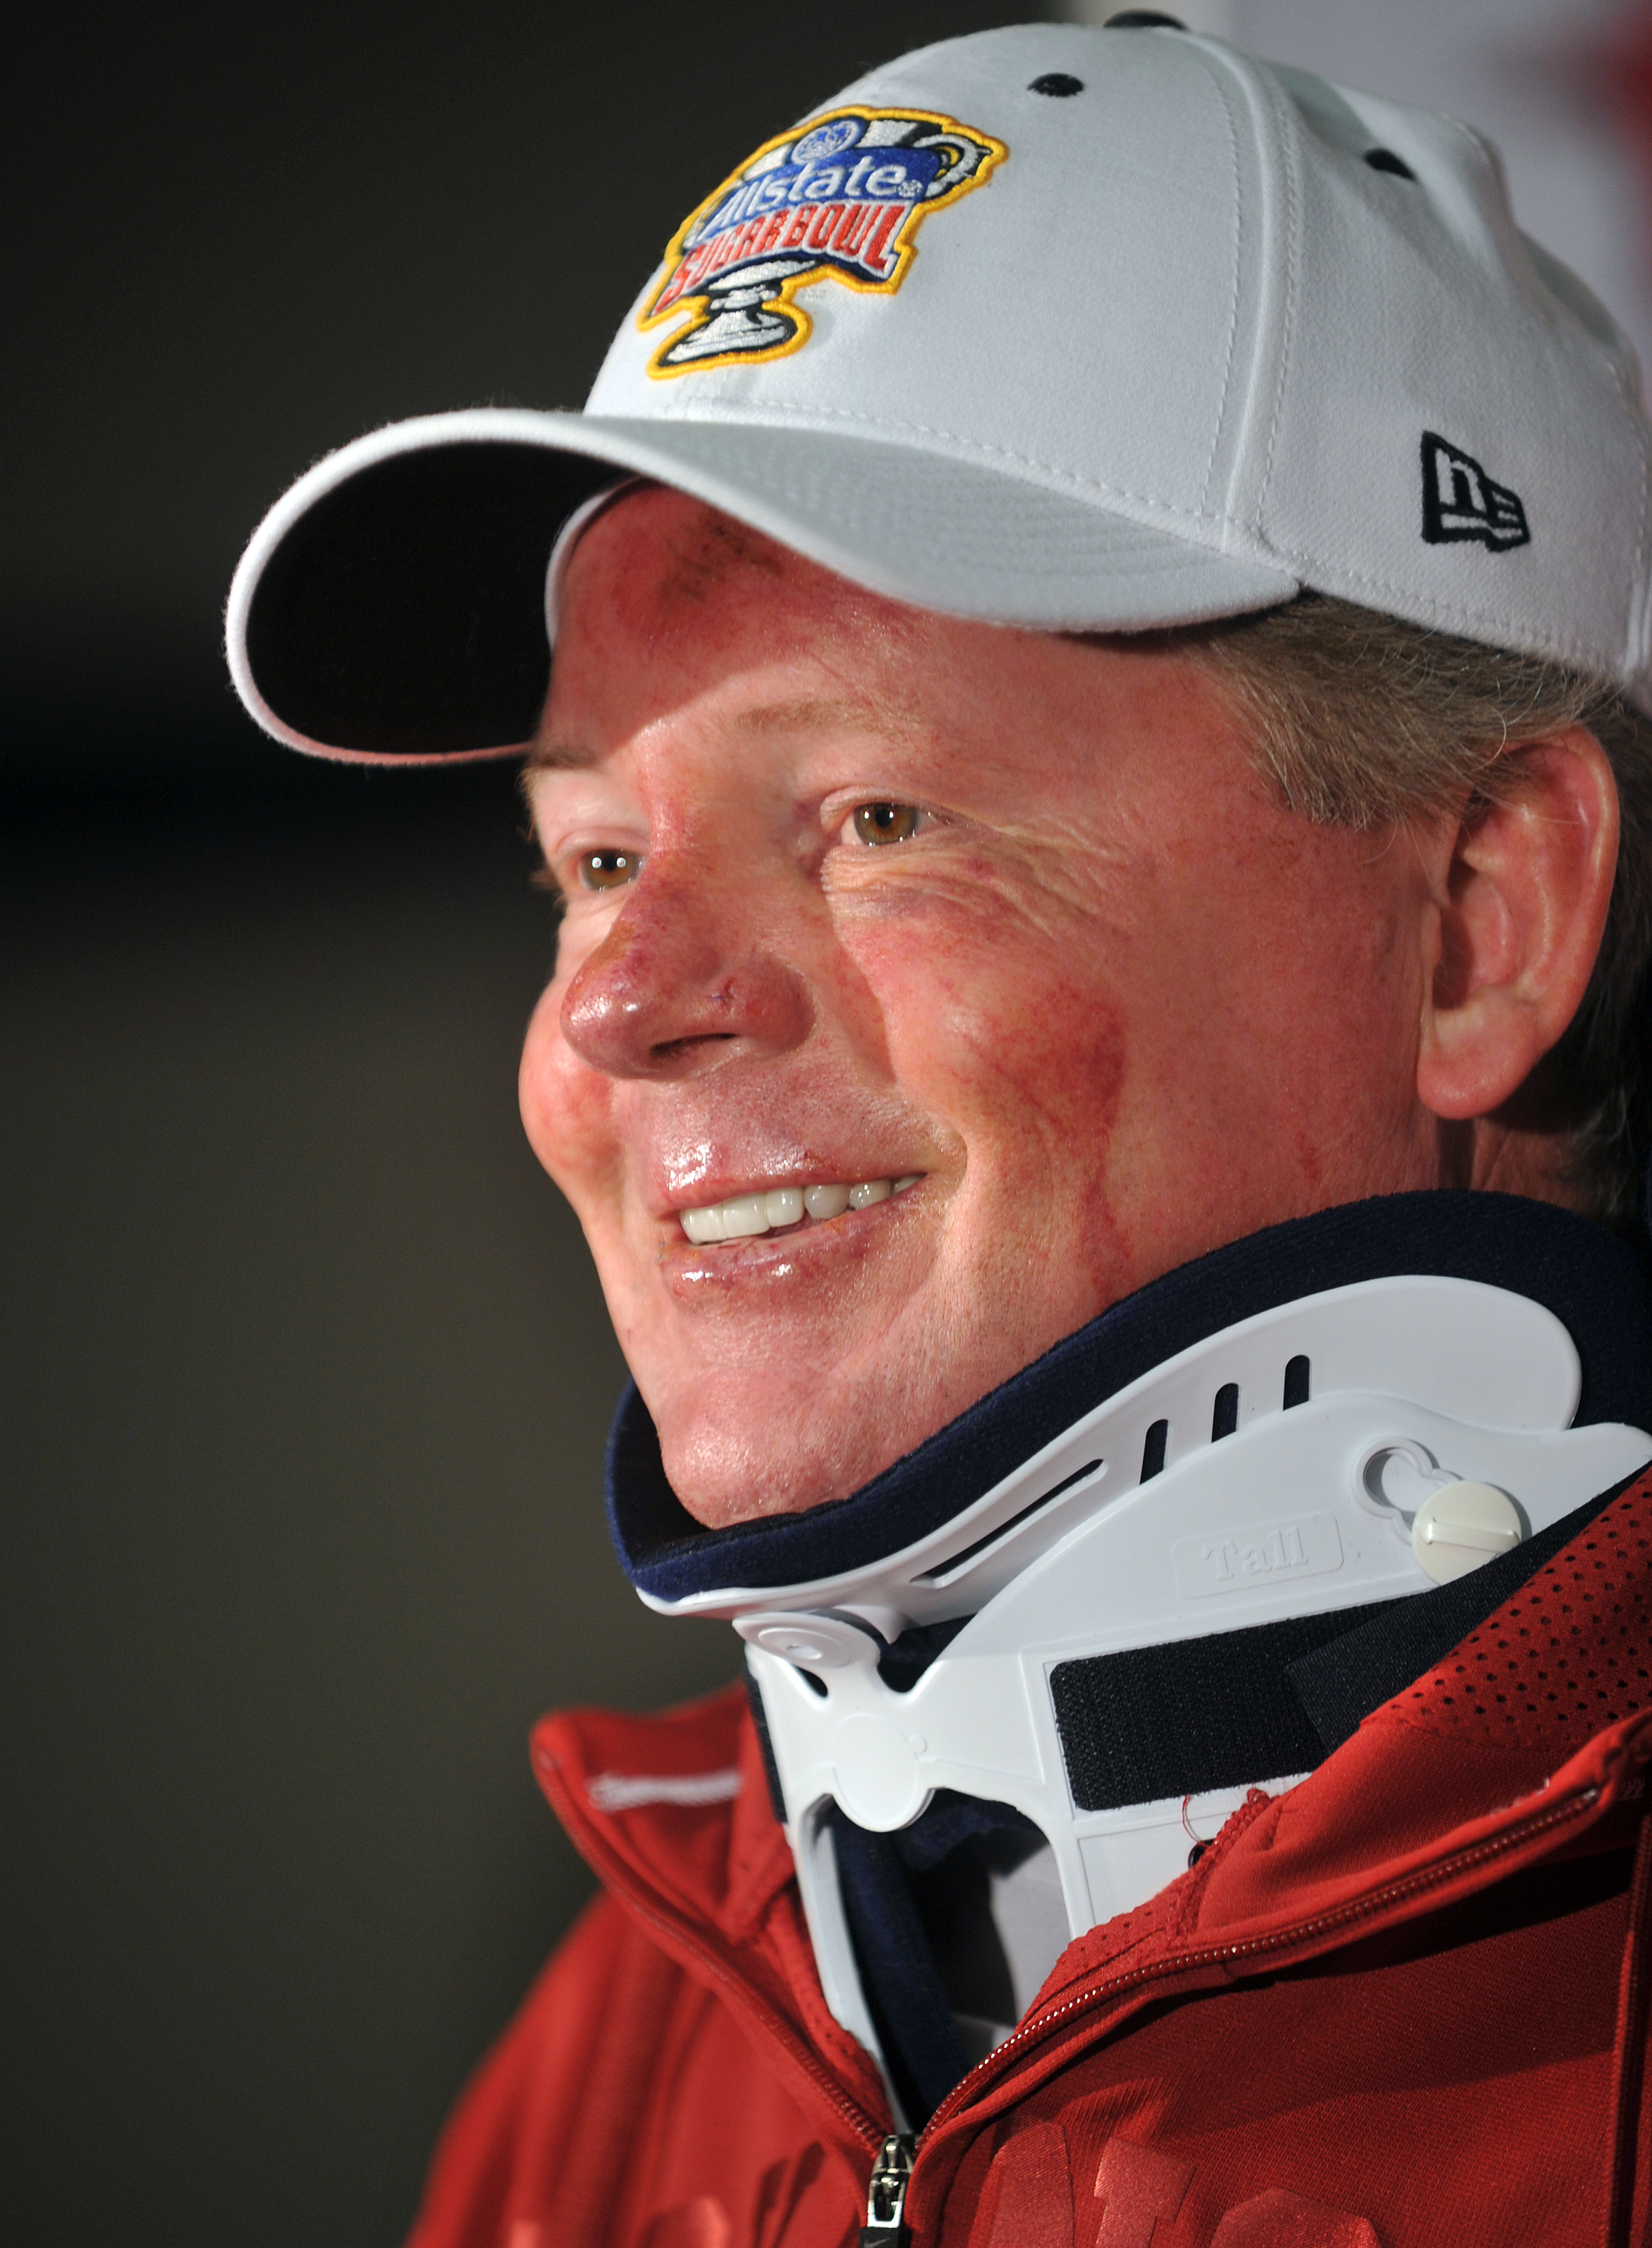 Bobby Petrino Archives - The Sports Seer